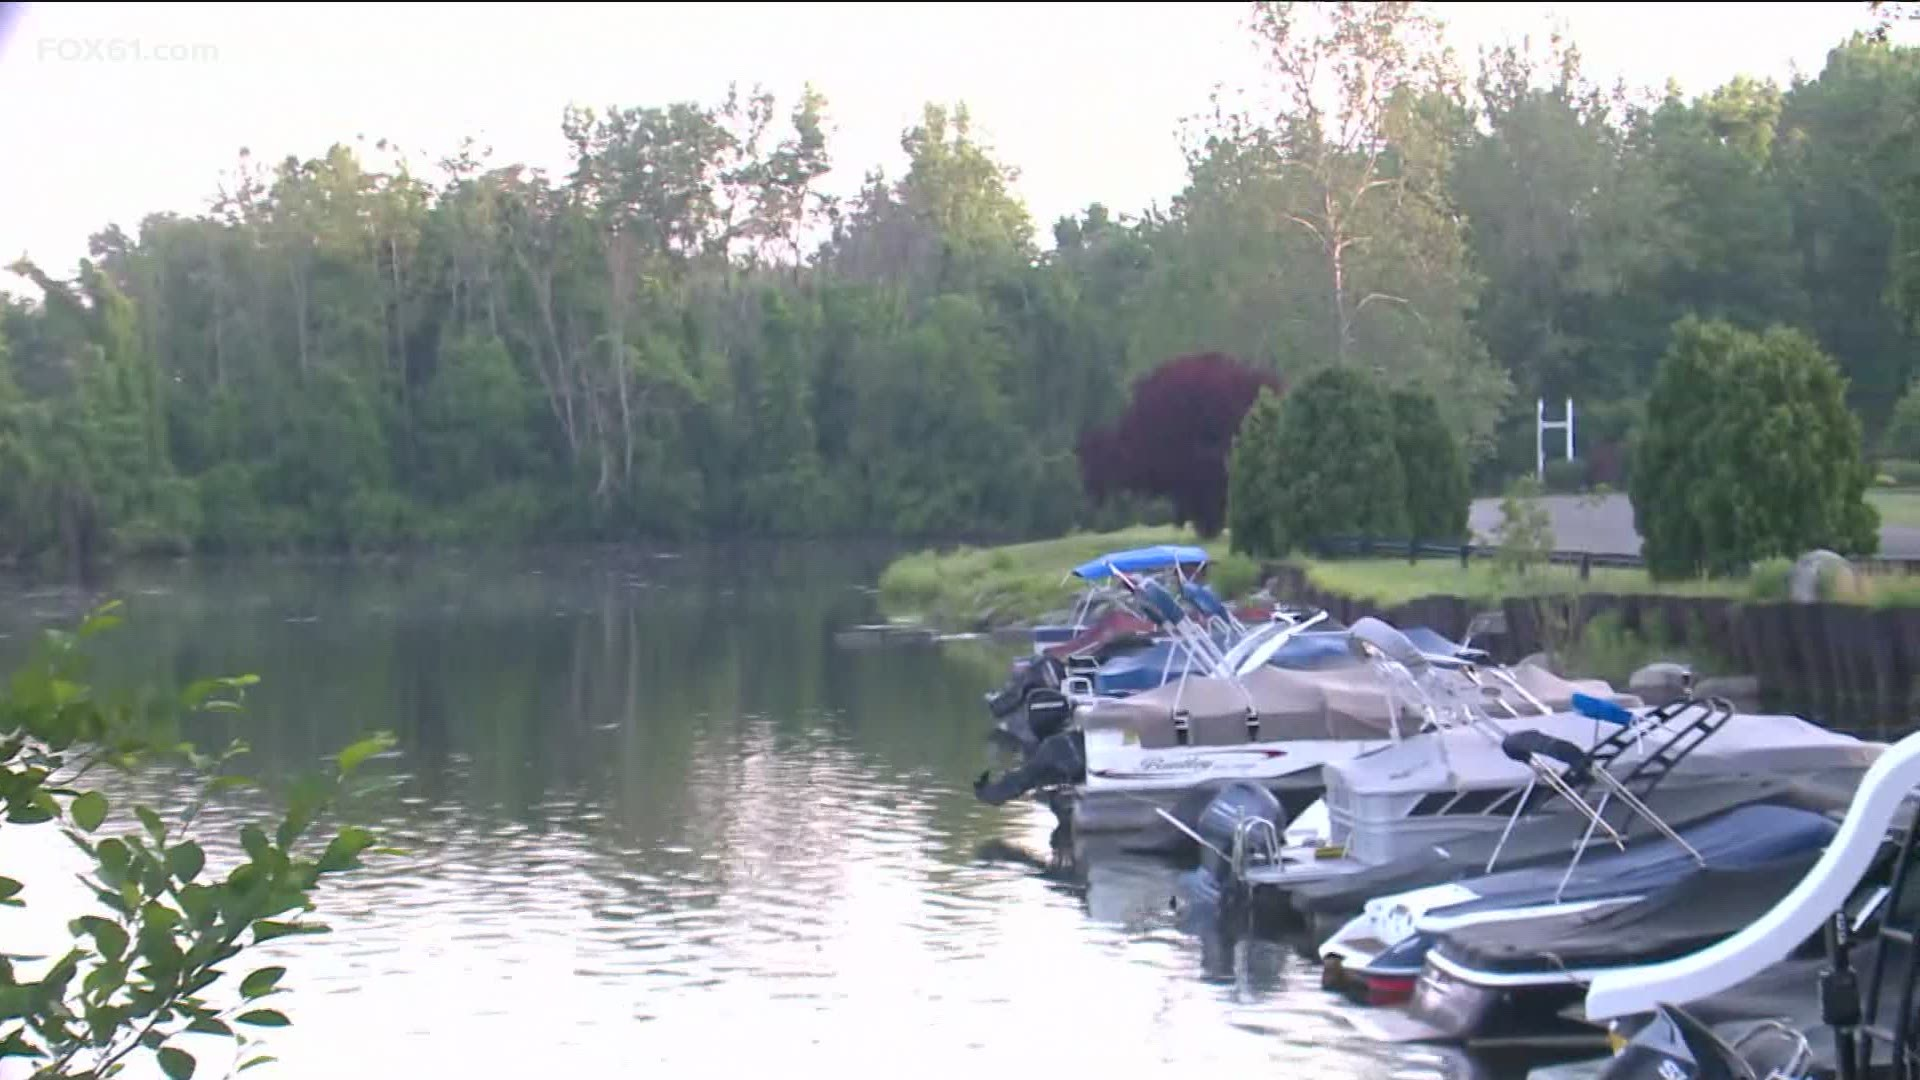 Bodies of Two Missing Fishermen Pulled from Housatonic River in Connecticut